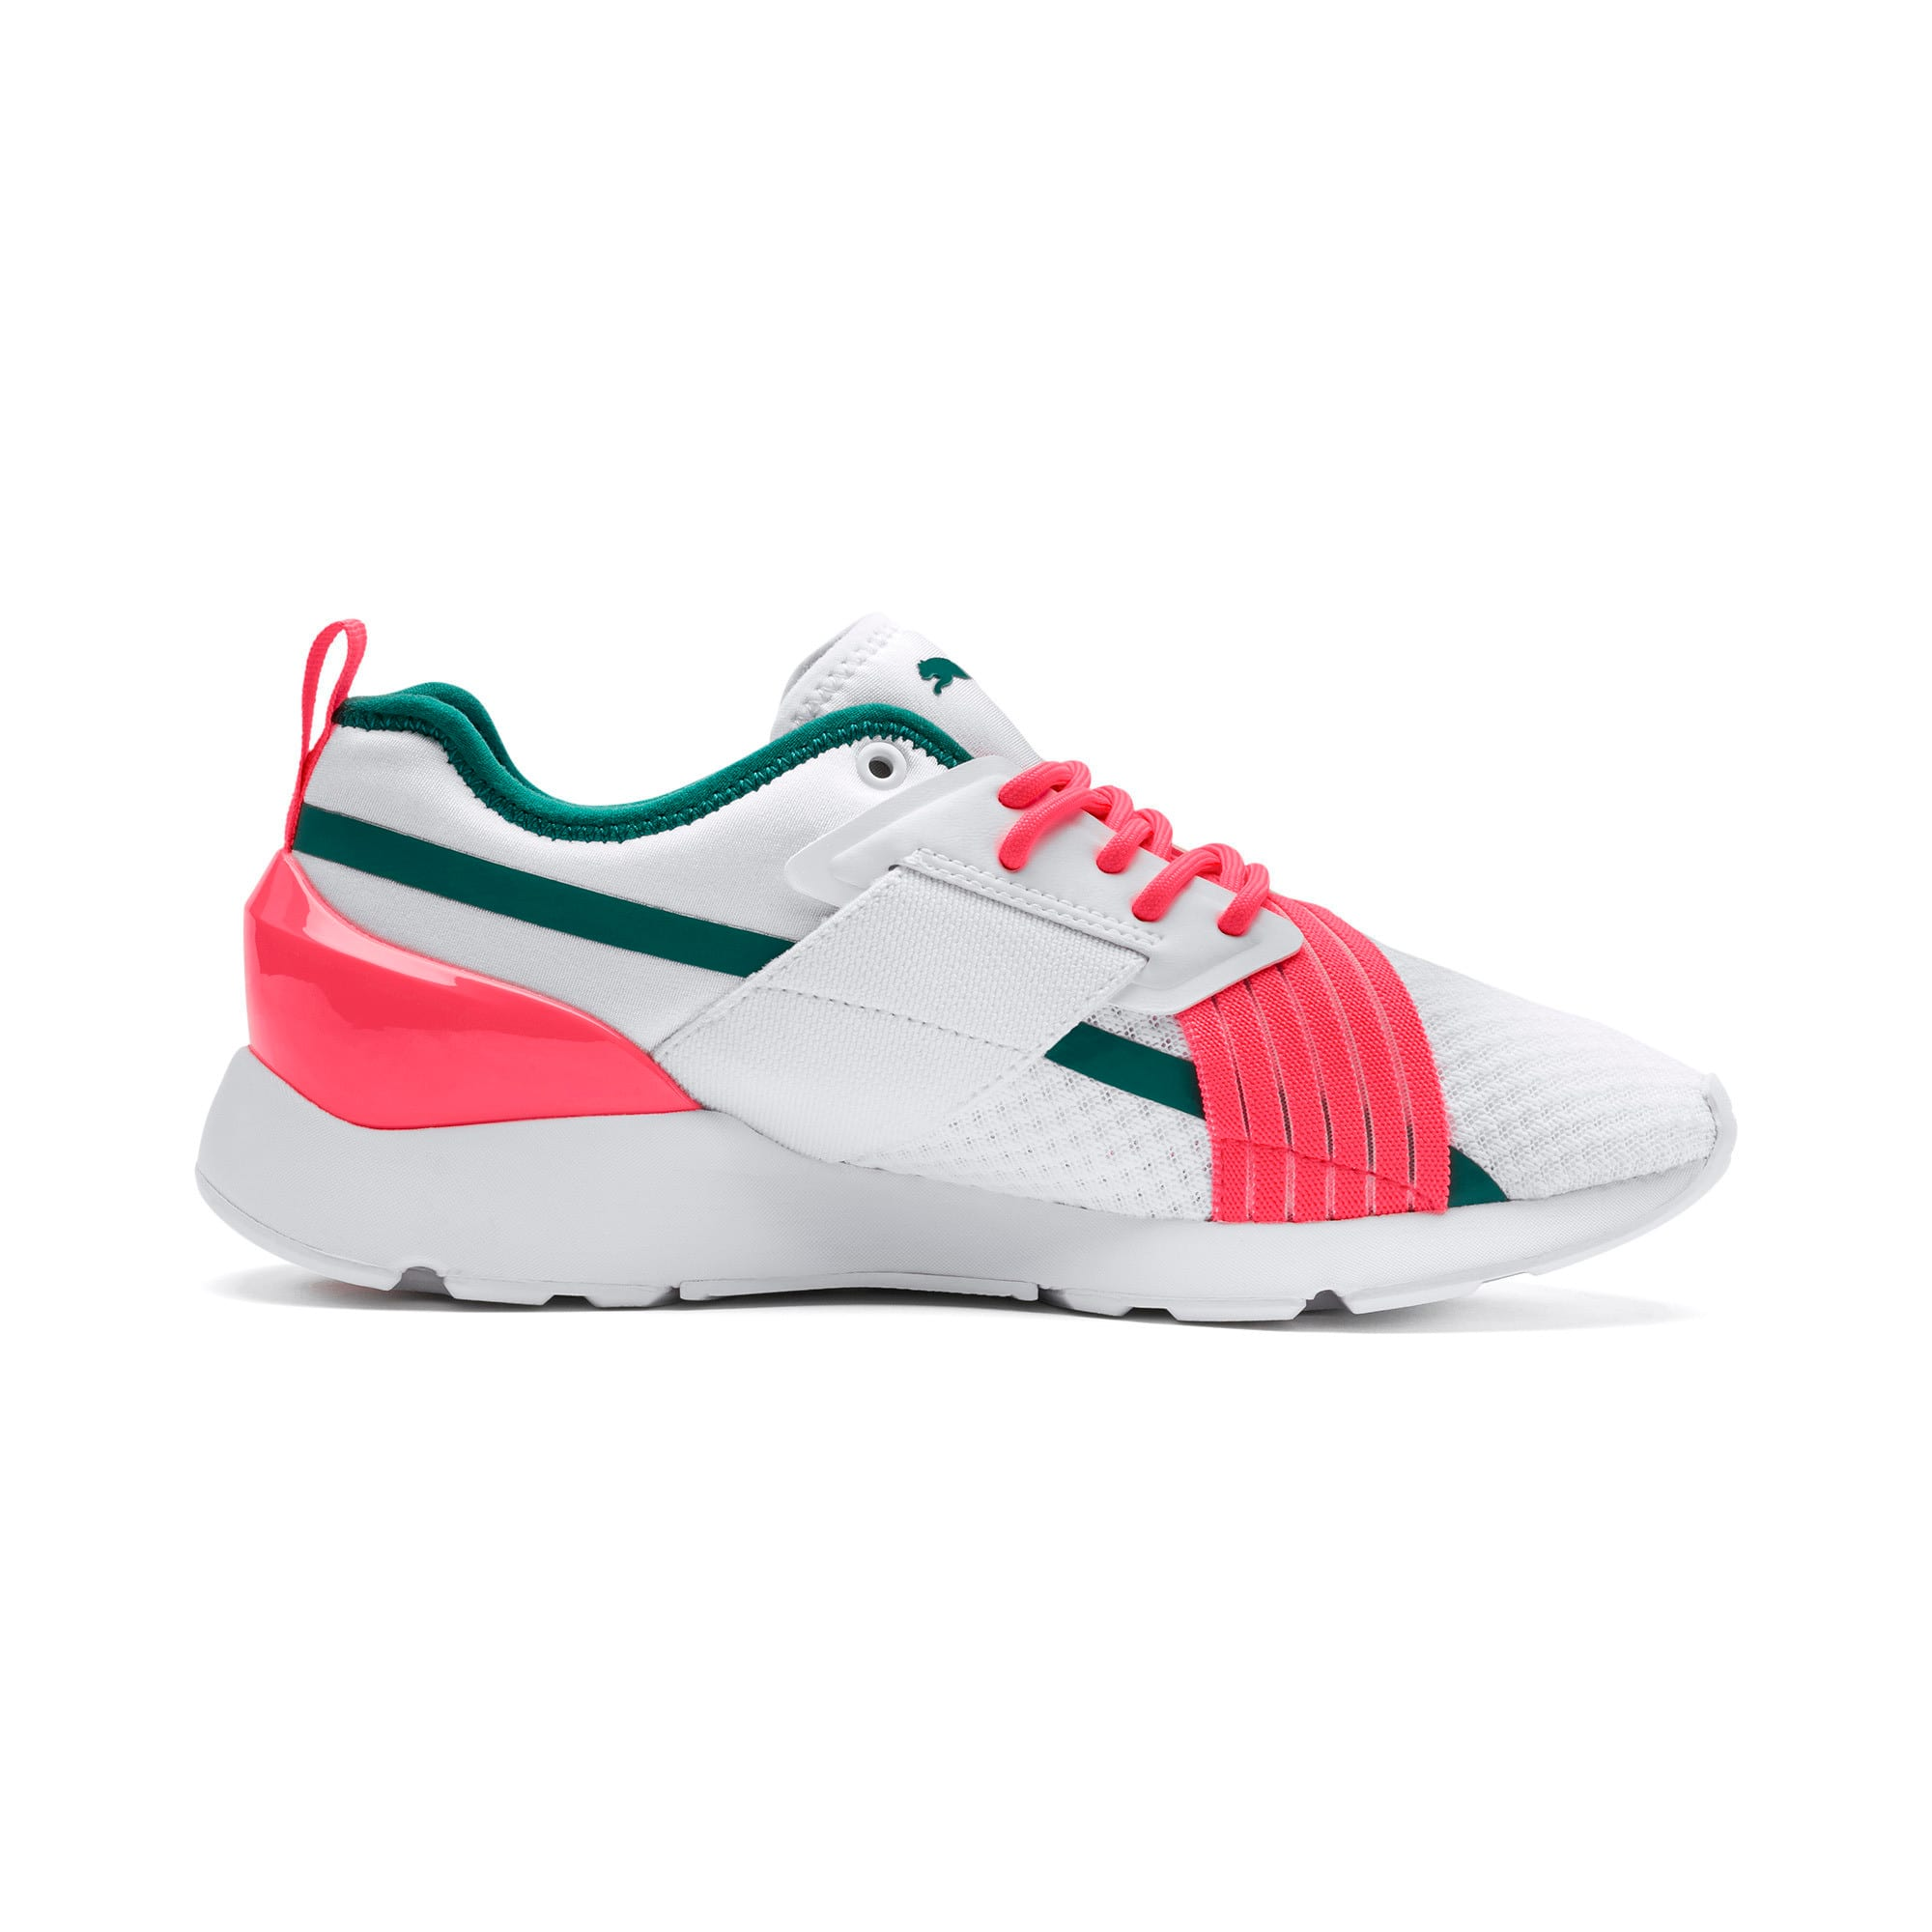 Thumbnail 6 of Muse X-2 Women's Trainers, Puma White-Pink Alert, medium